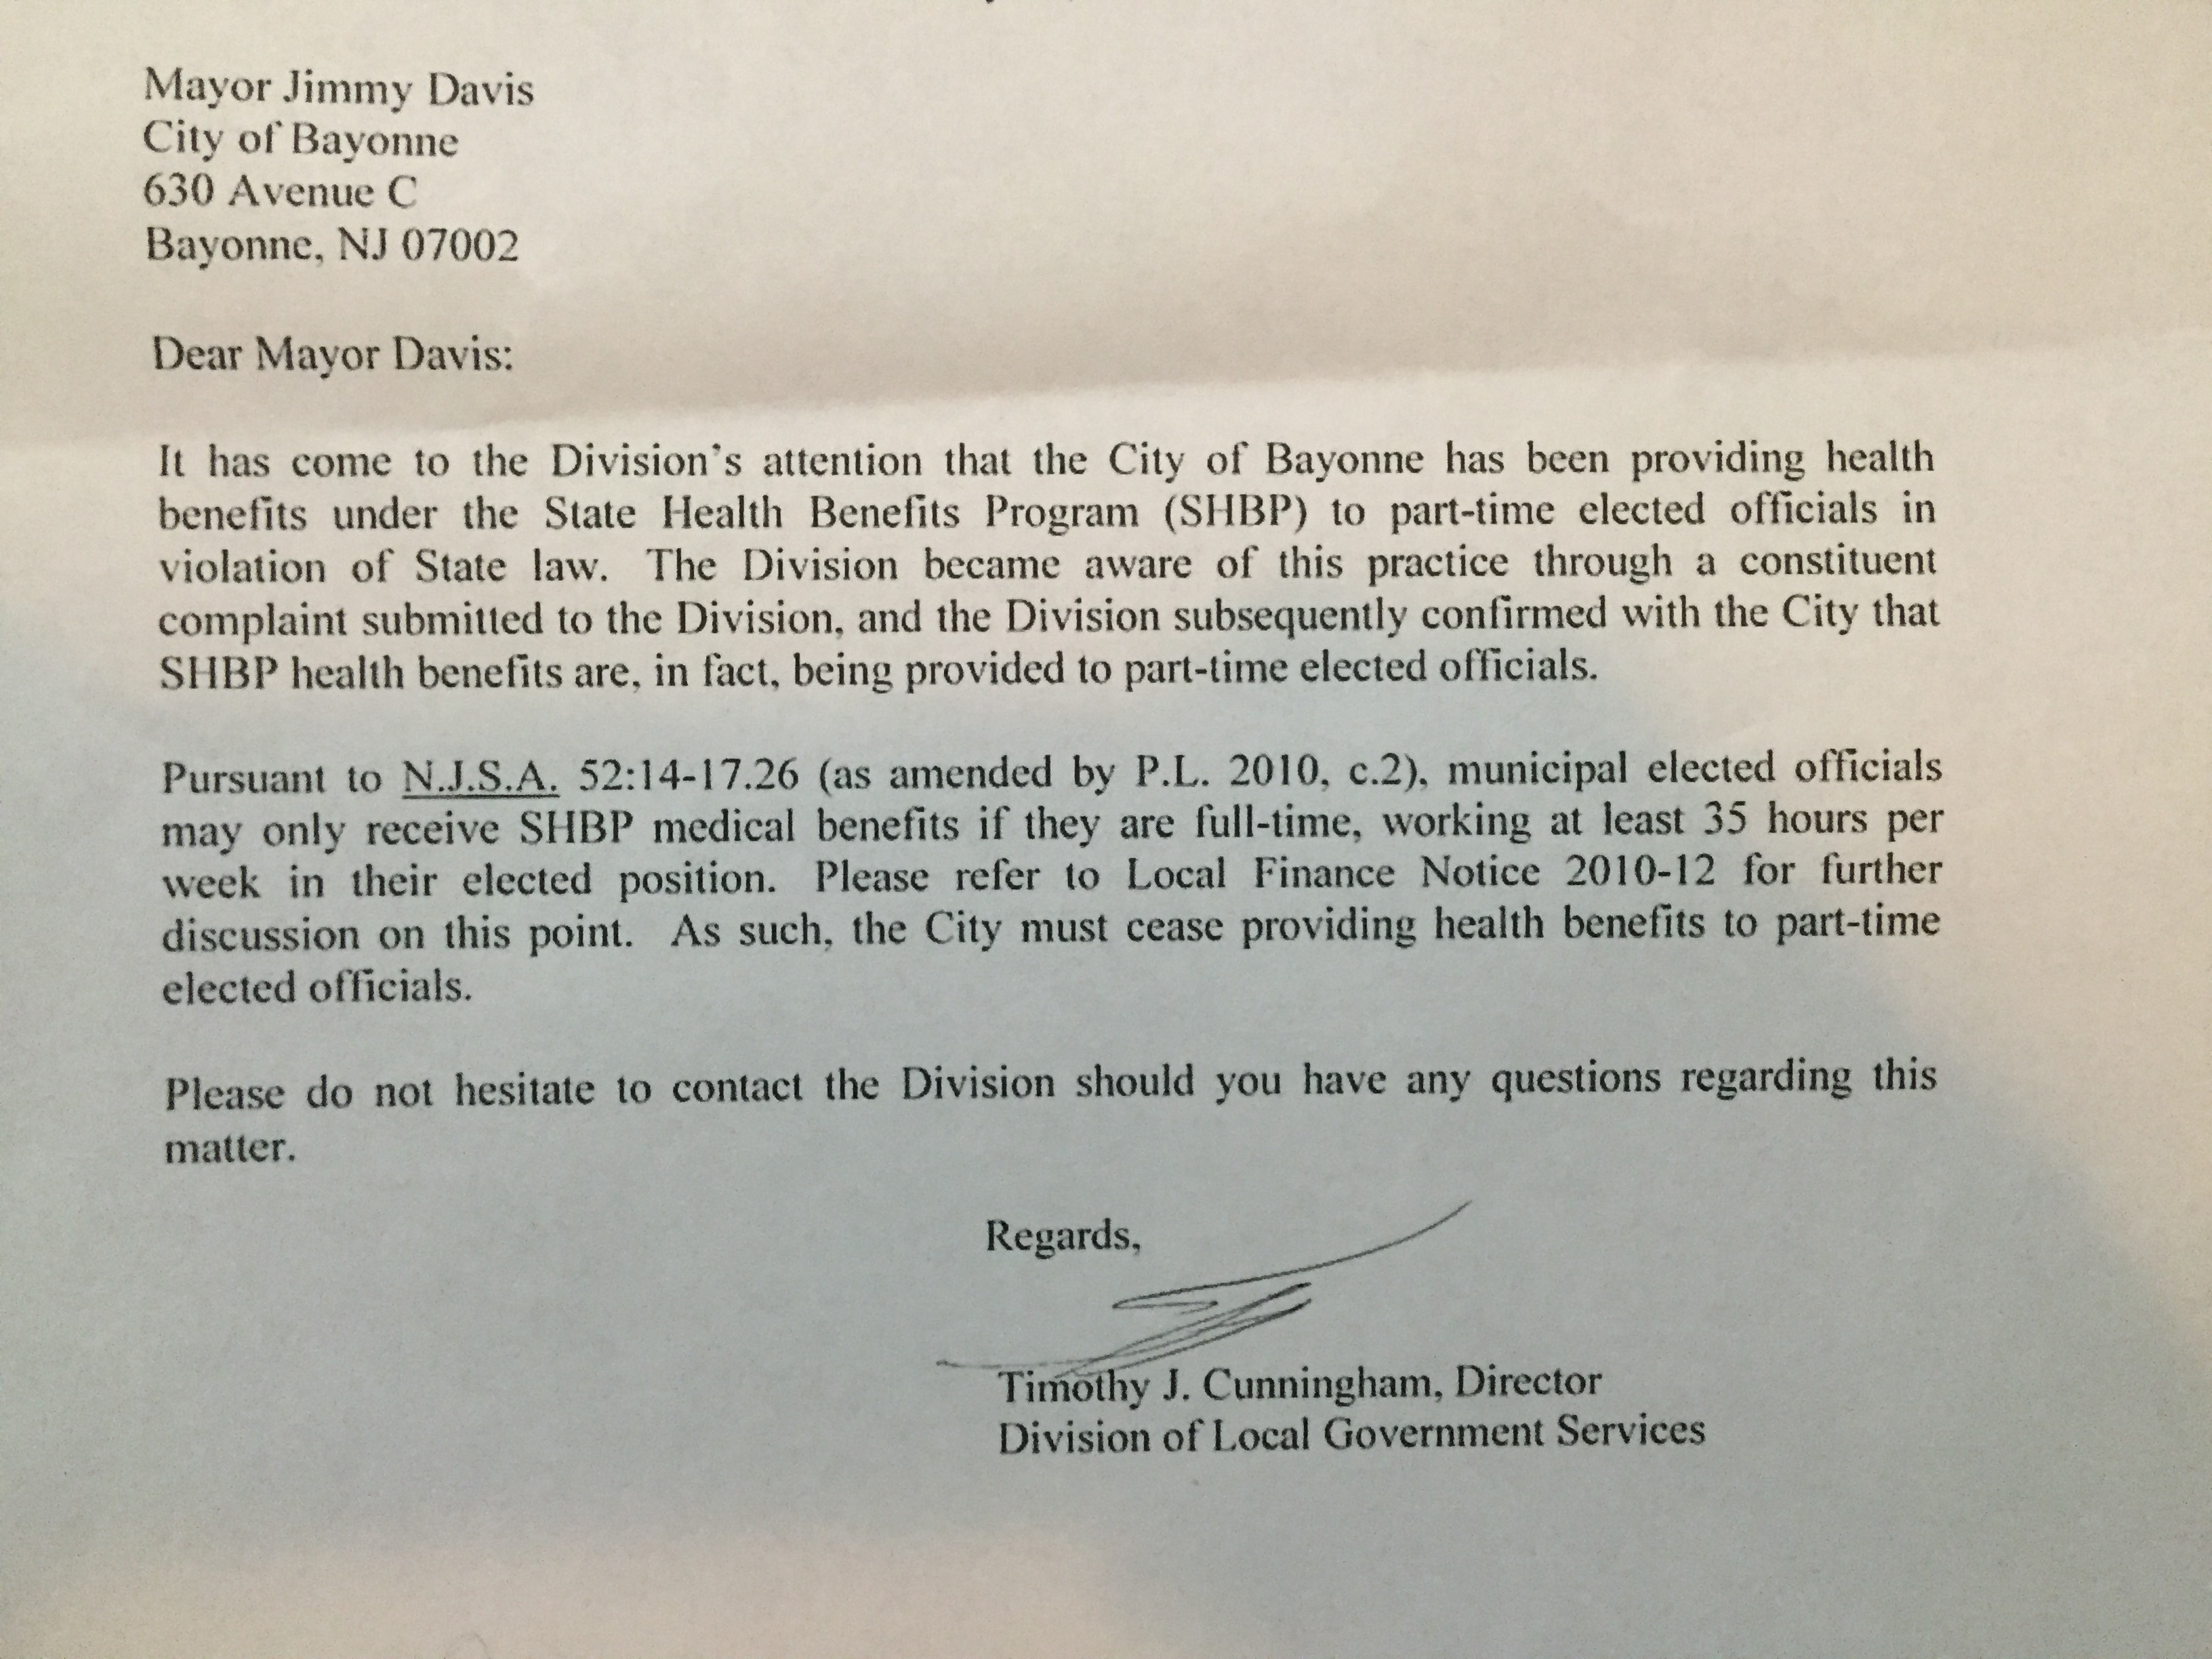 Department of Community Affairs - State of New Jersey (letter)